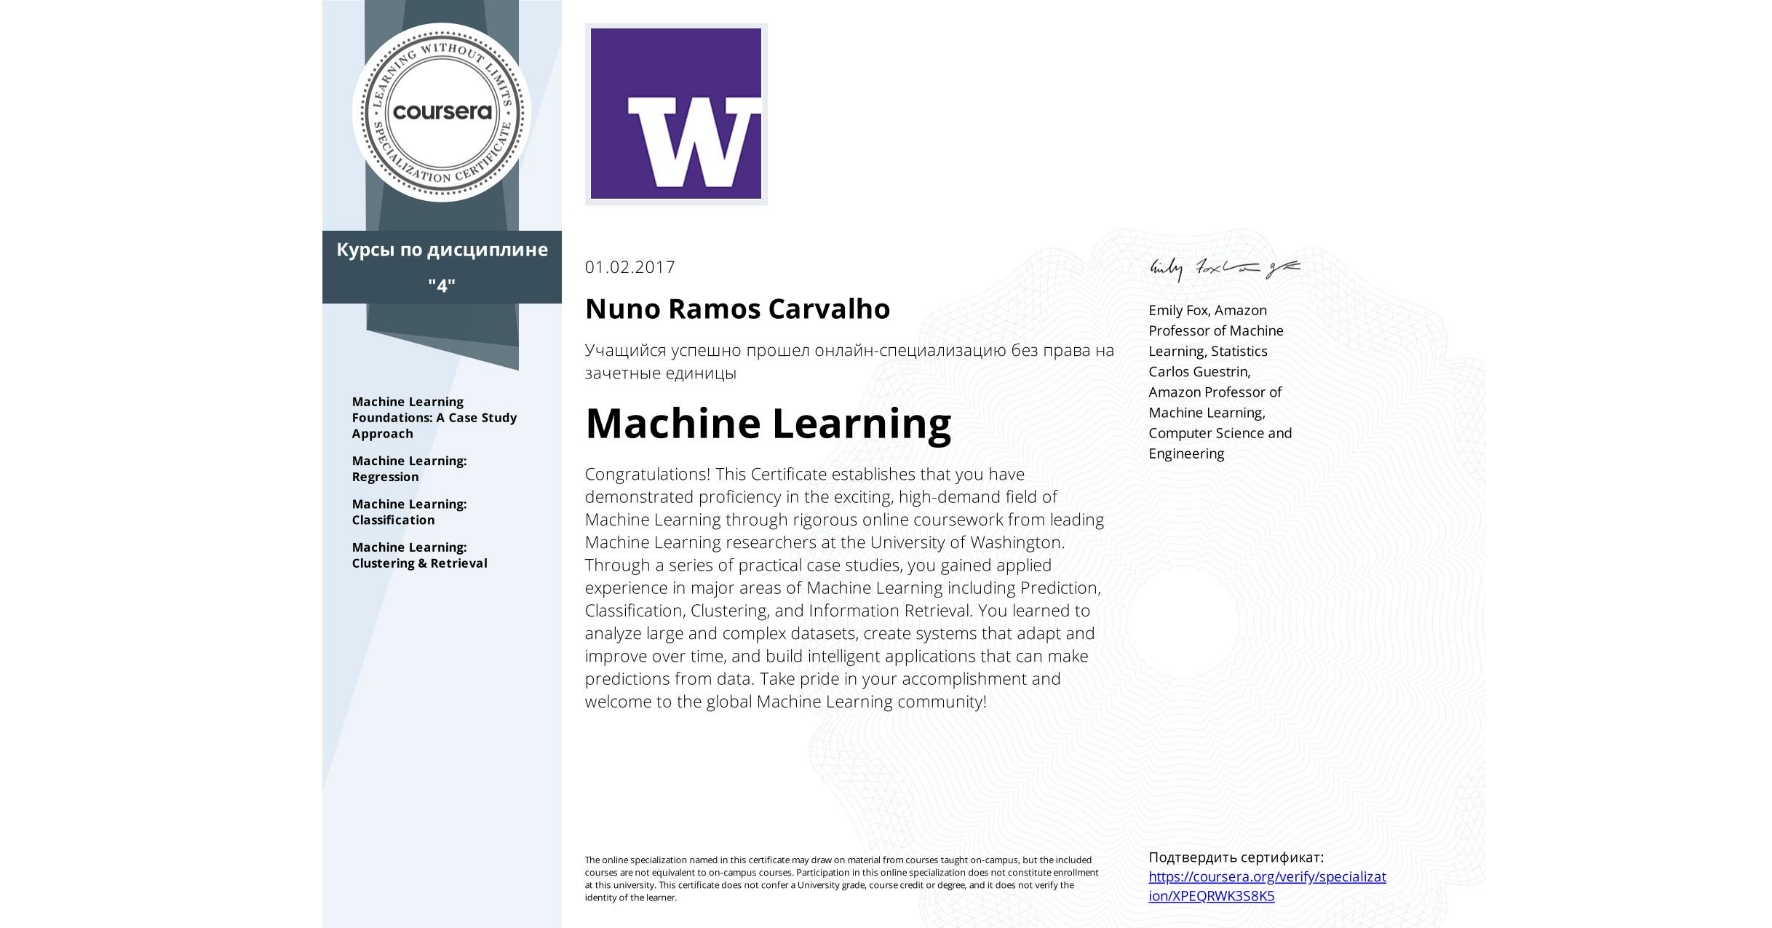 View certificate for Nuno Ramos Carvalho, Machine Learning, offered through Coursera. Congratulations! This Certificate establishes that you have demonstrated proficiency in the exciting, high-demand field of Machine Learning through rigorous online coursework from leading Machine Learning researchers at the University of Washington. Through a series of practical case studies, you gained applied experience in major areas of Machine Learning including Prediction, Classification, Clustering, and Information Retrieval. You learned to analyze large and complex datasets, create systems that adapt and improve over time, and build intelligent applications that can make predictions from data. Take pride in your accomplishment and welcome to the global Machine Learning community!